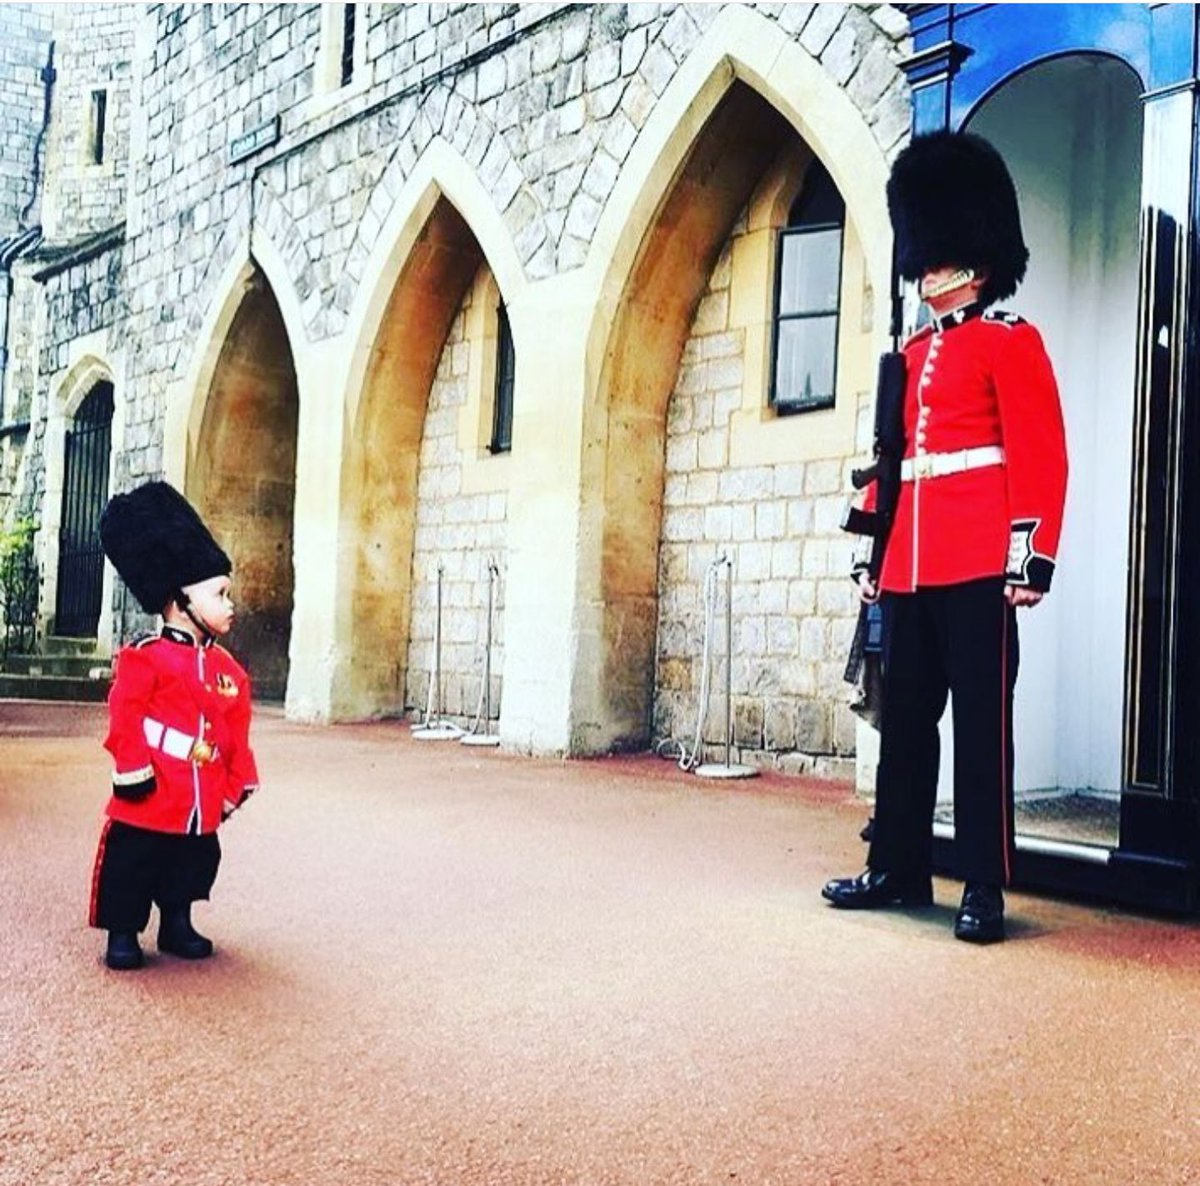 We love our service men &amp; women here in #Windsor. Have a great day, neighbours @HCR_Windsor @ColdstreamGds! #ArmedForcesDay #FutureGuardsman<br>http://pic.twitter.com/VZbZrFgiq8